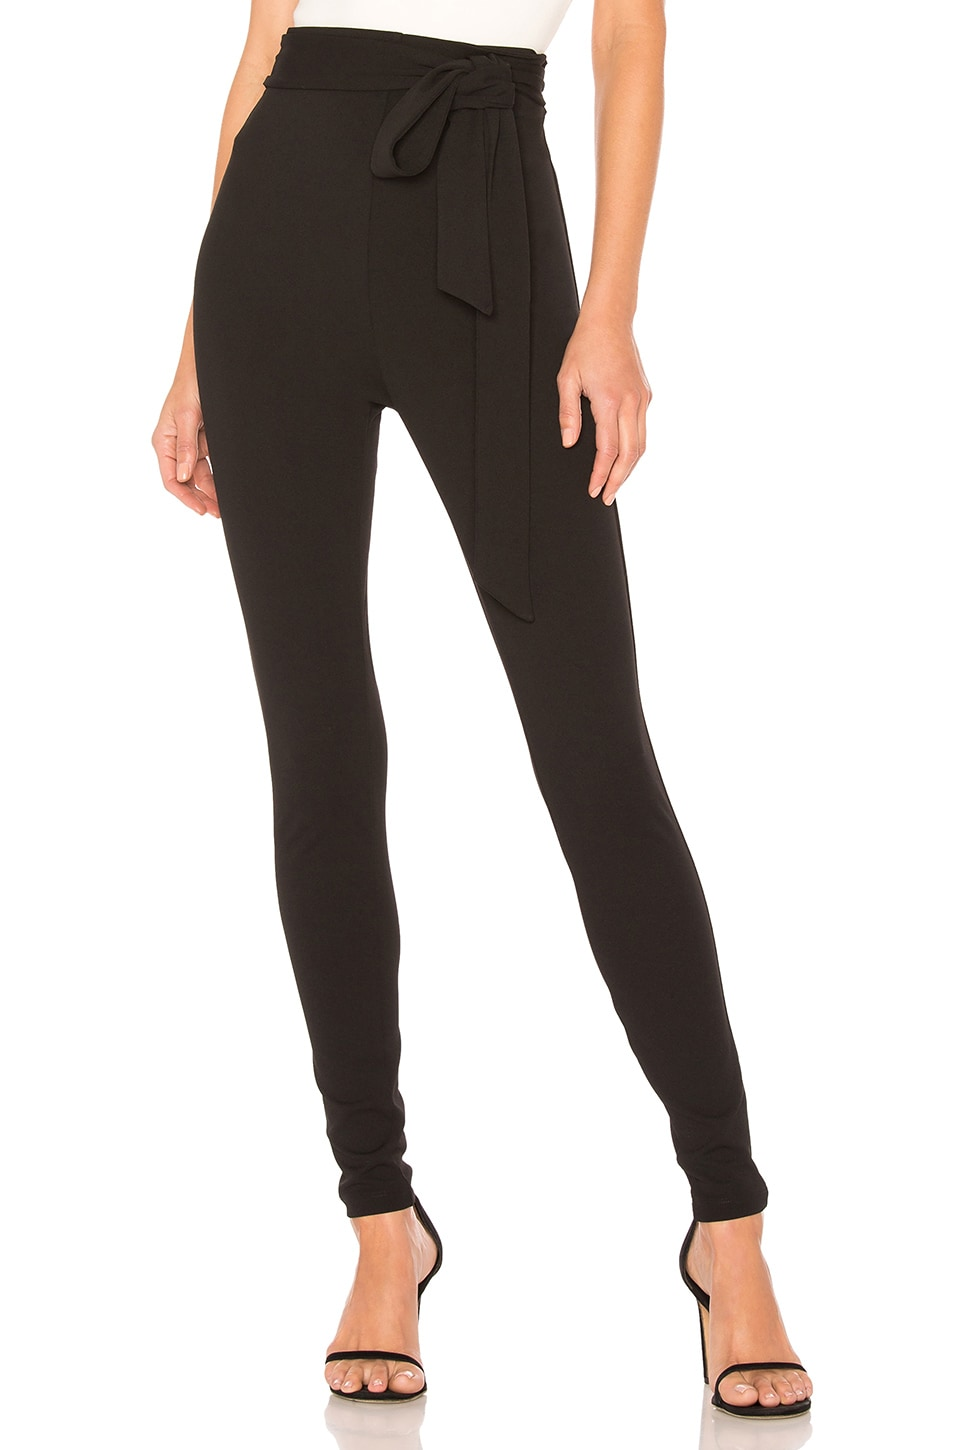 Nookie Palace Pant in Black